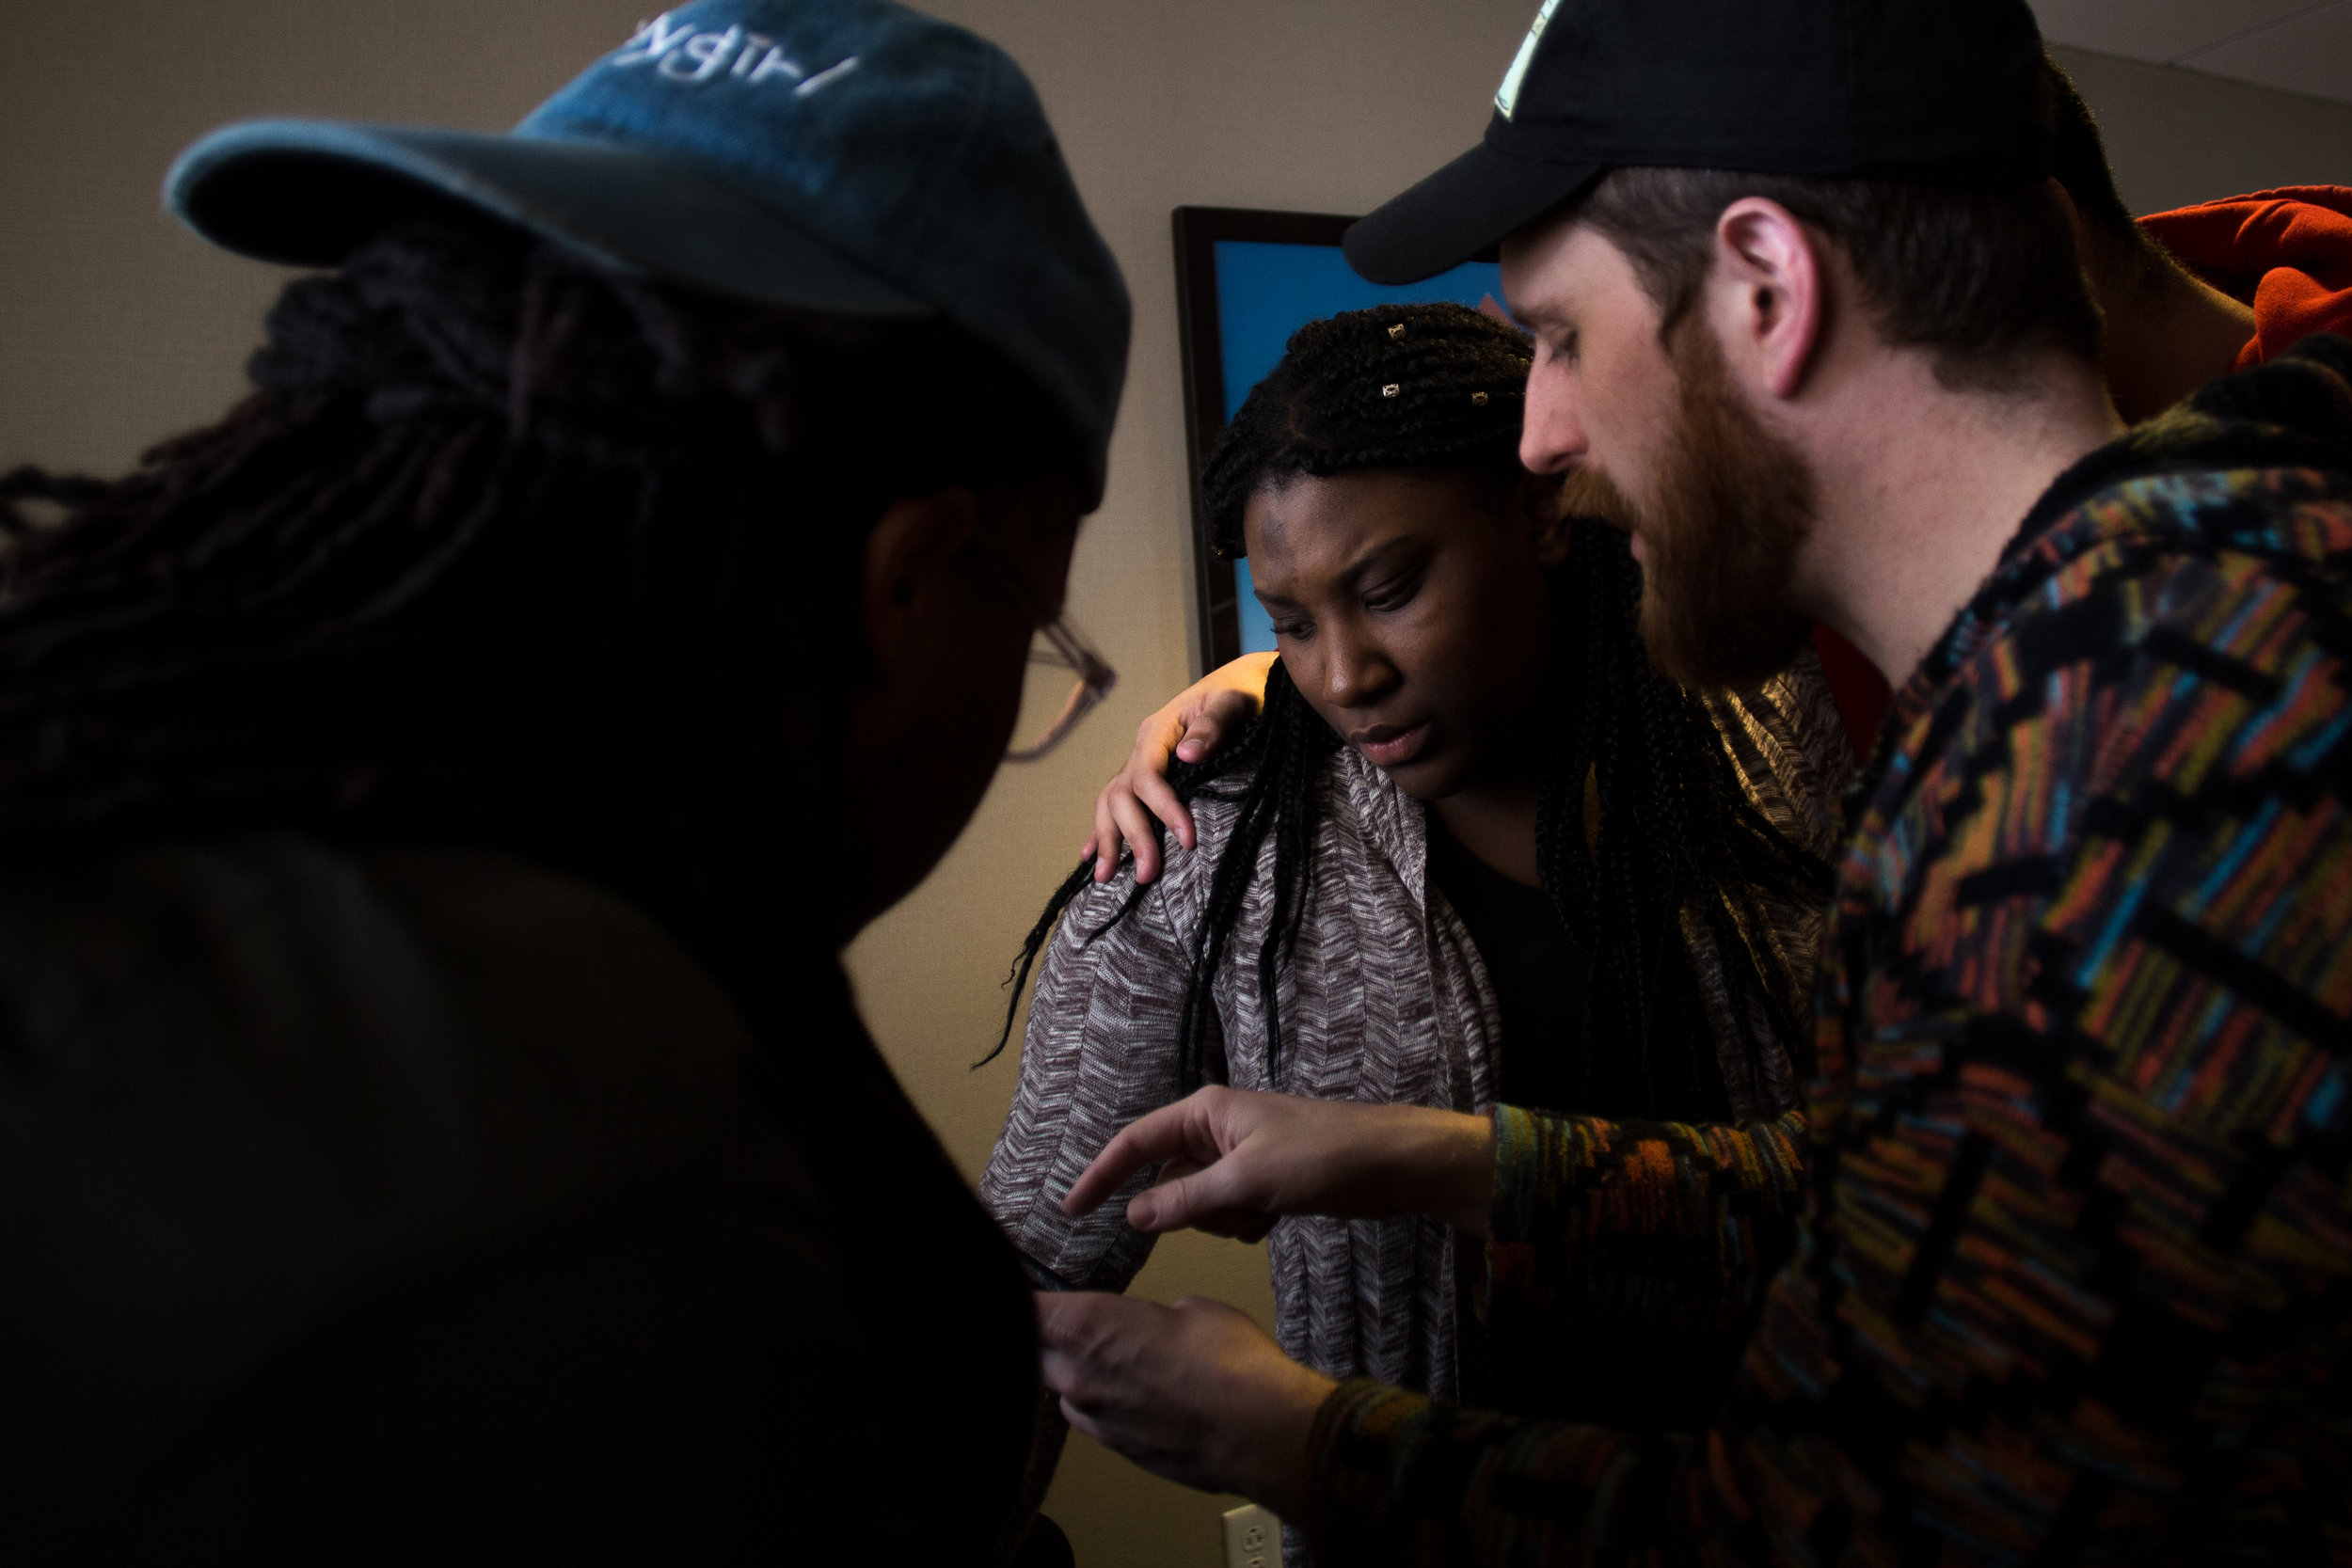 Pierresaint's coaches give her last minute advice before performing her first individual poem in the preliminary round of Louder Than a Bomb in Boston, April 8.